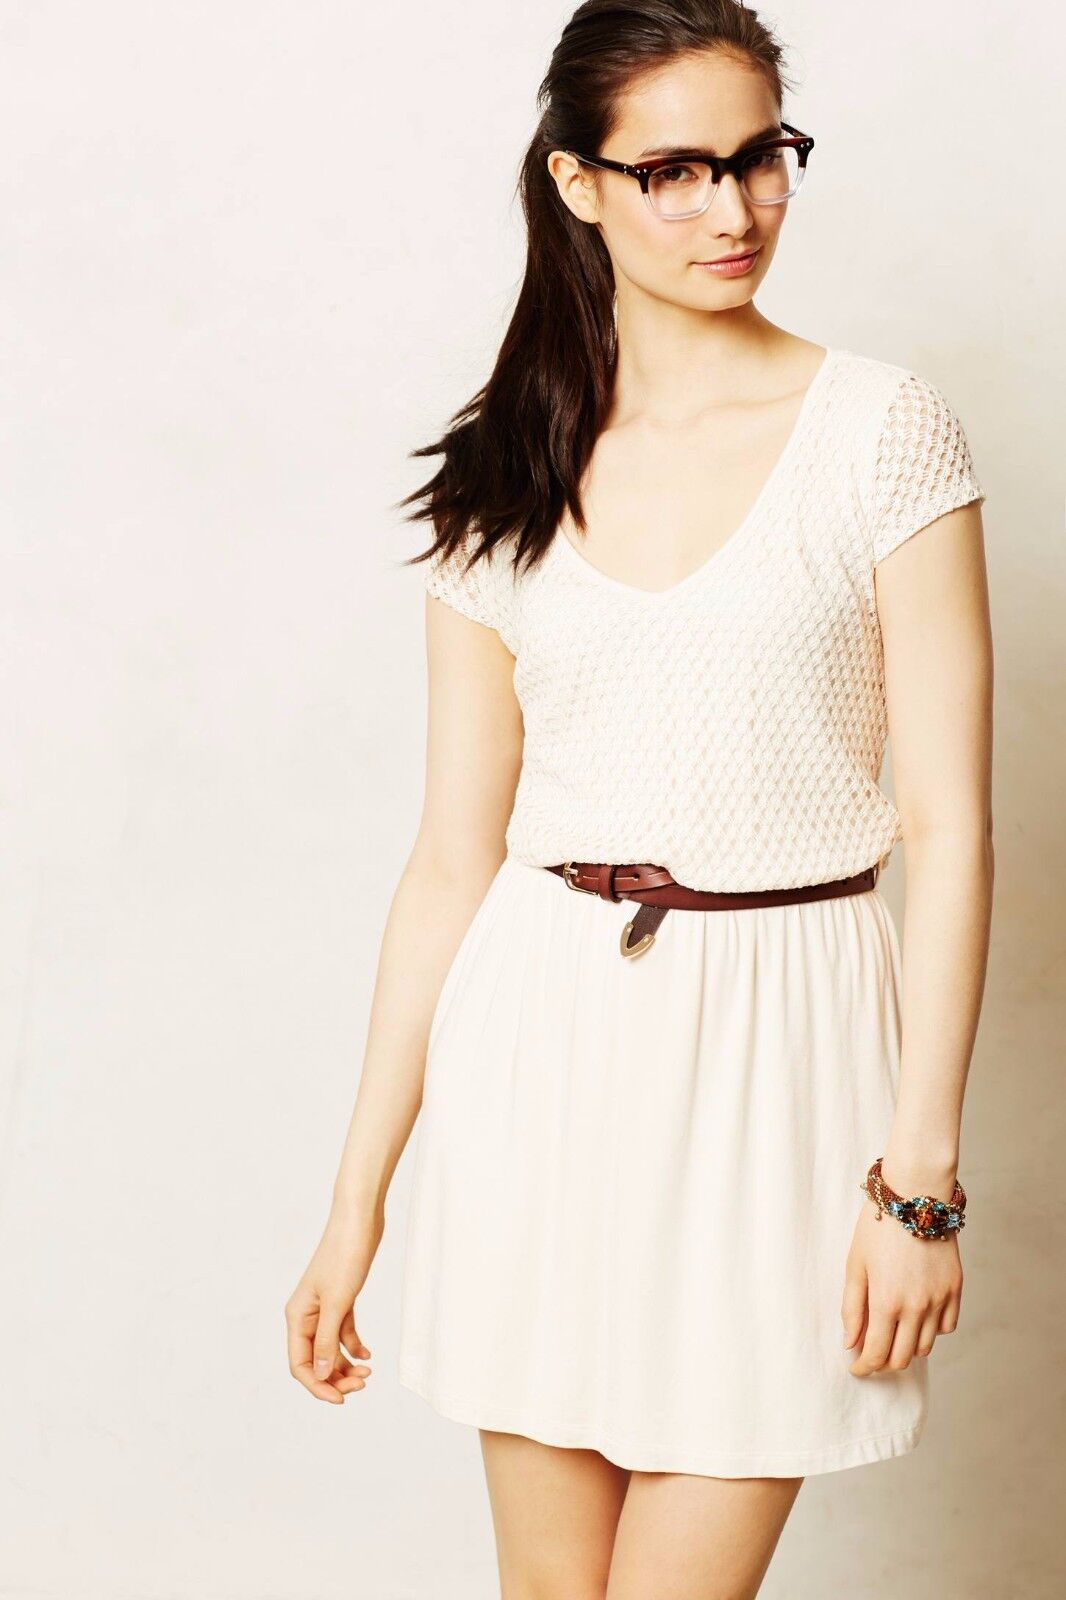 NIP Anthropologie Altea Eyelet Dress by Tart, XS, S, M, L, Ivory with Belt